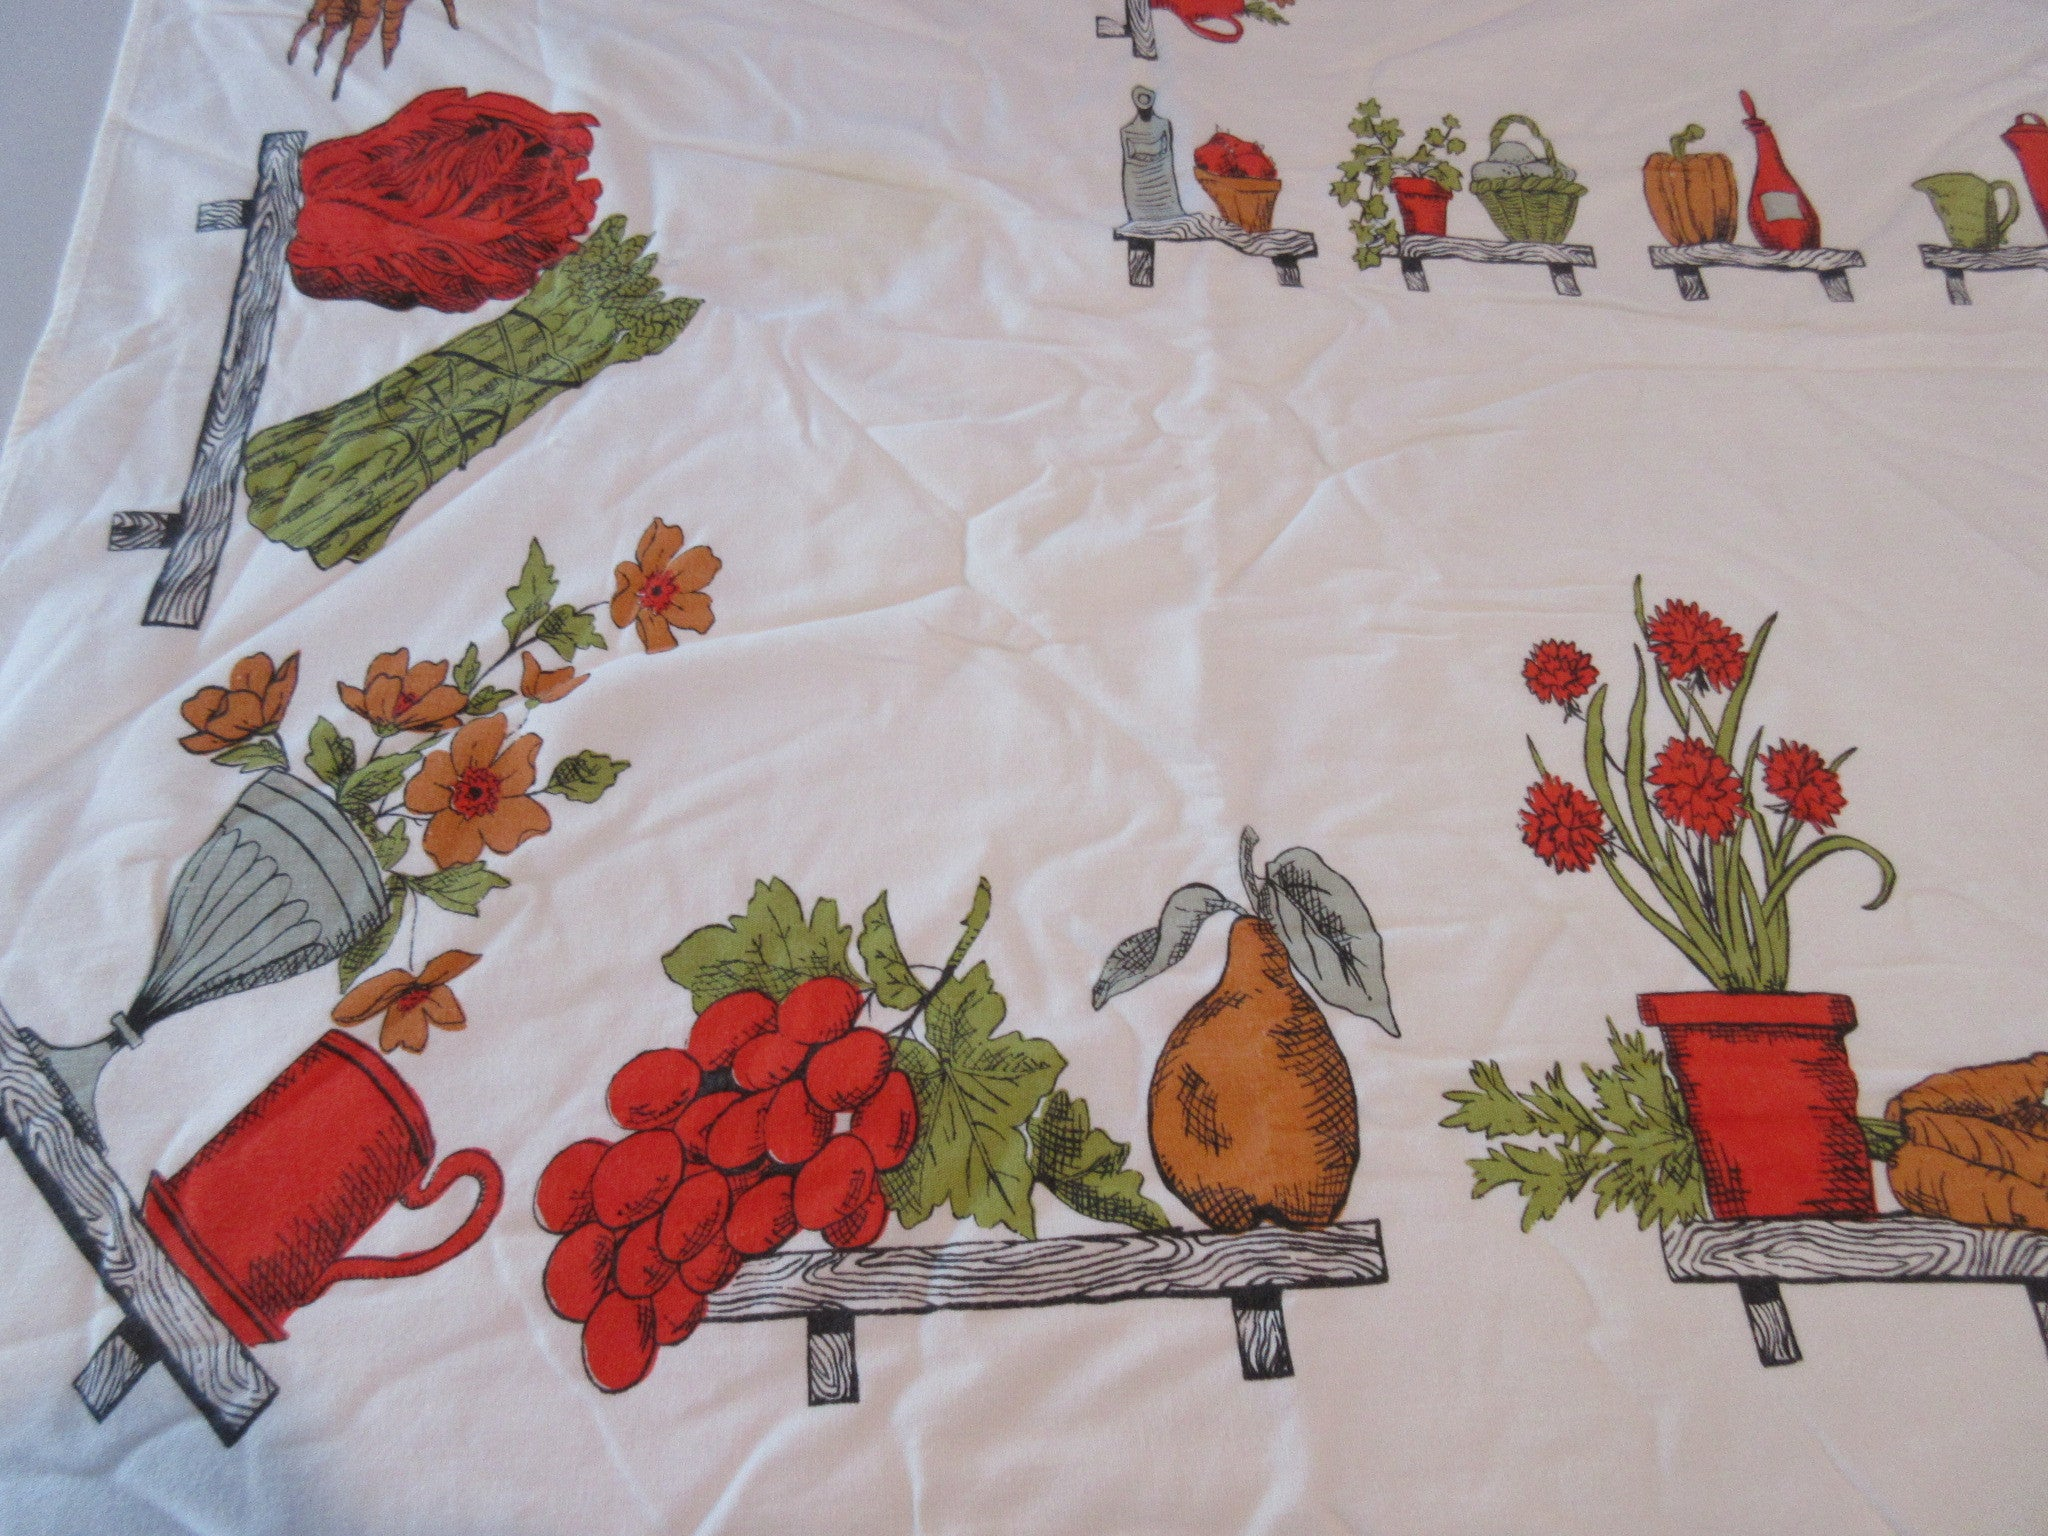 Kitchen Shelves Fruit Vegetables Cutter Vintage Printed Tablecloth (58 X 52)